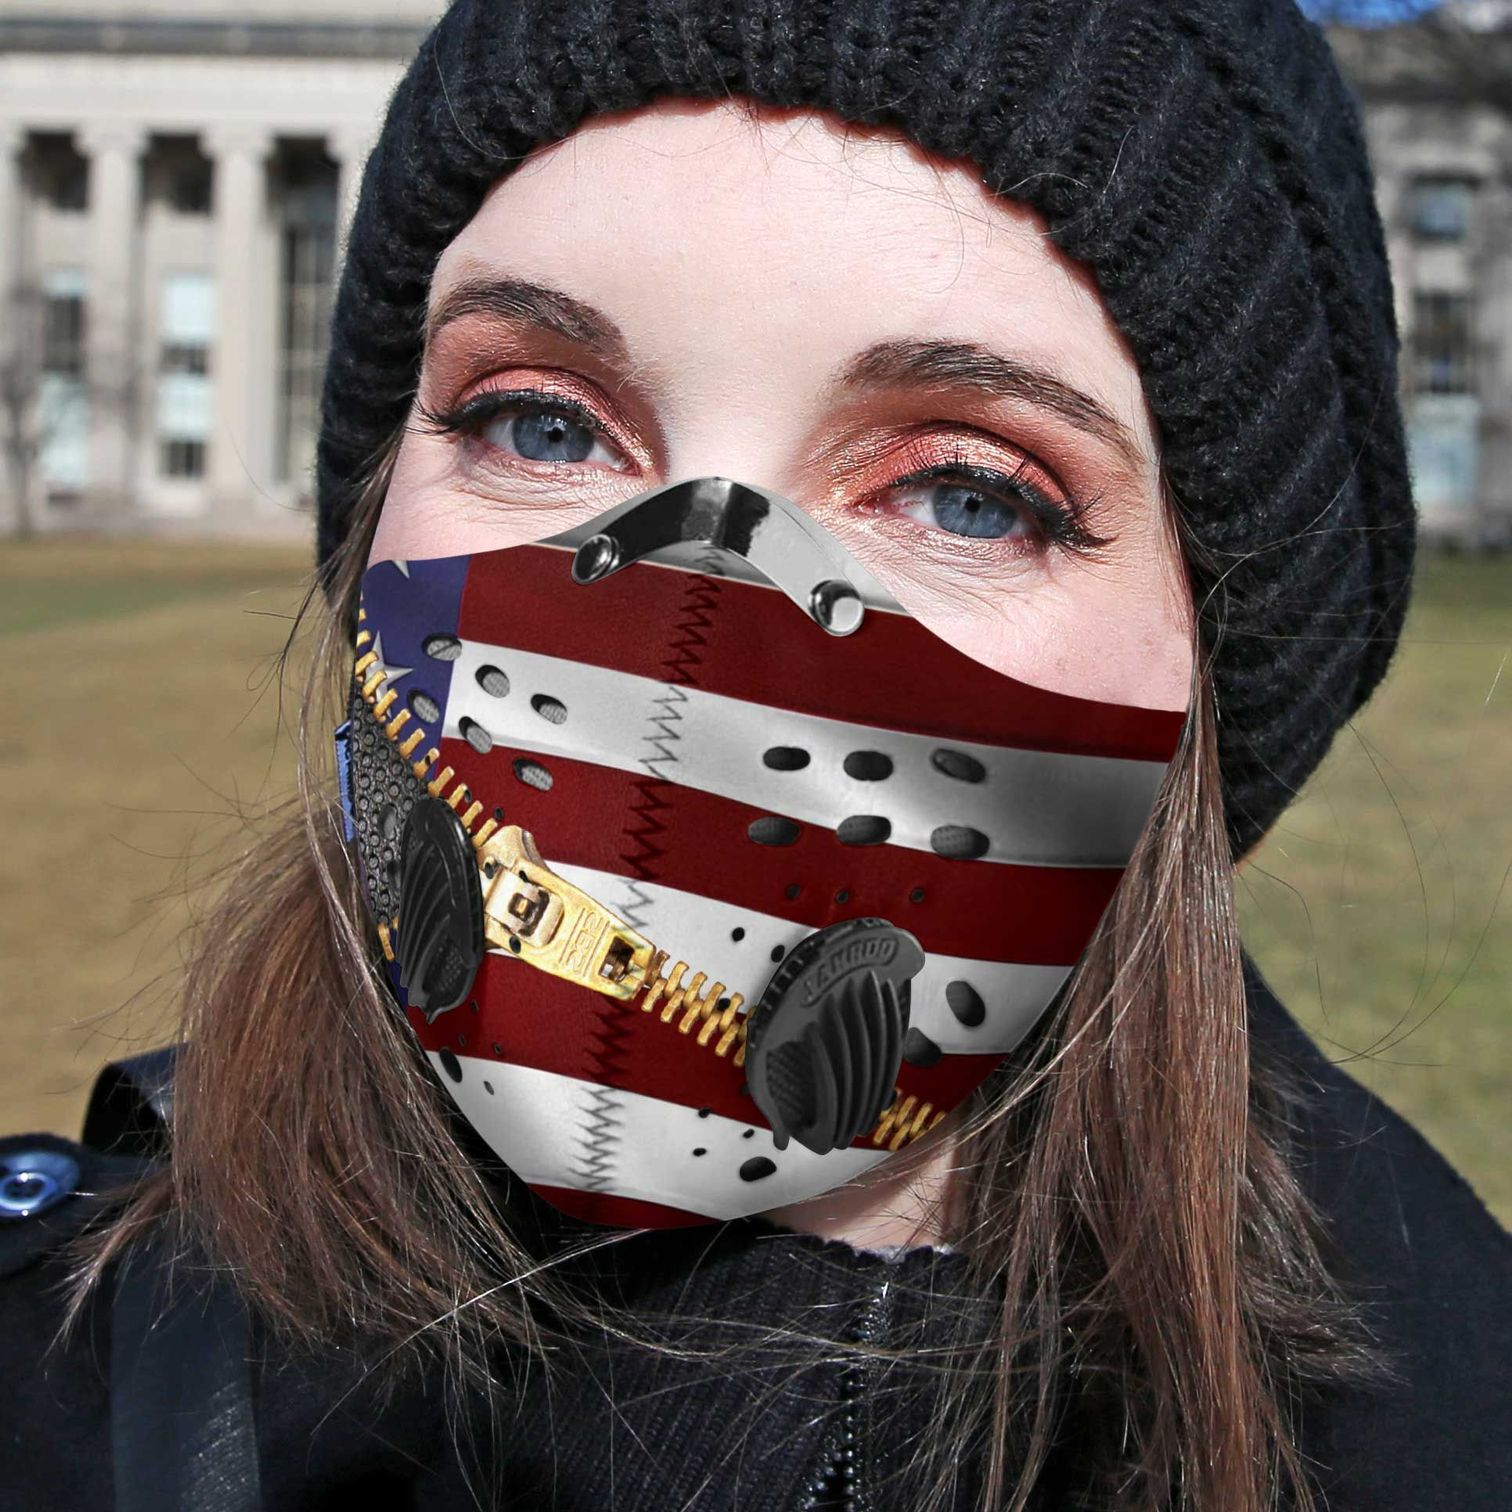 Hairstylist hair hustle american flag carbon pm 2,5 face mask 4